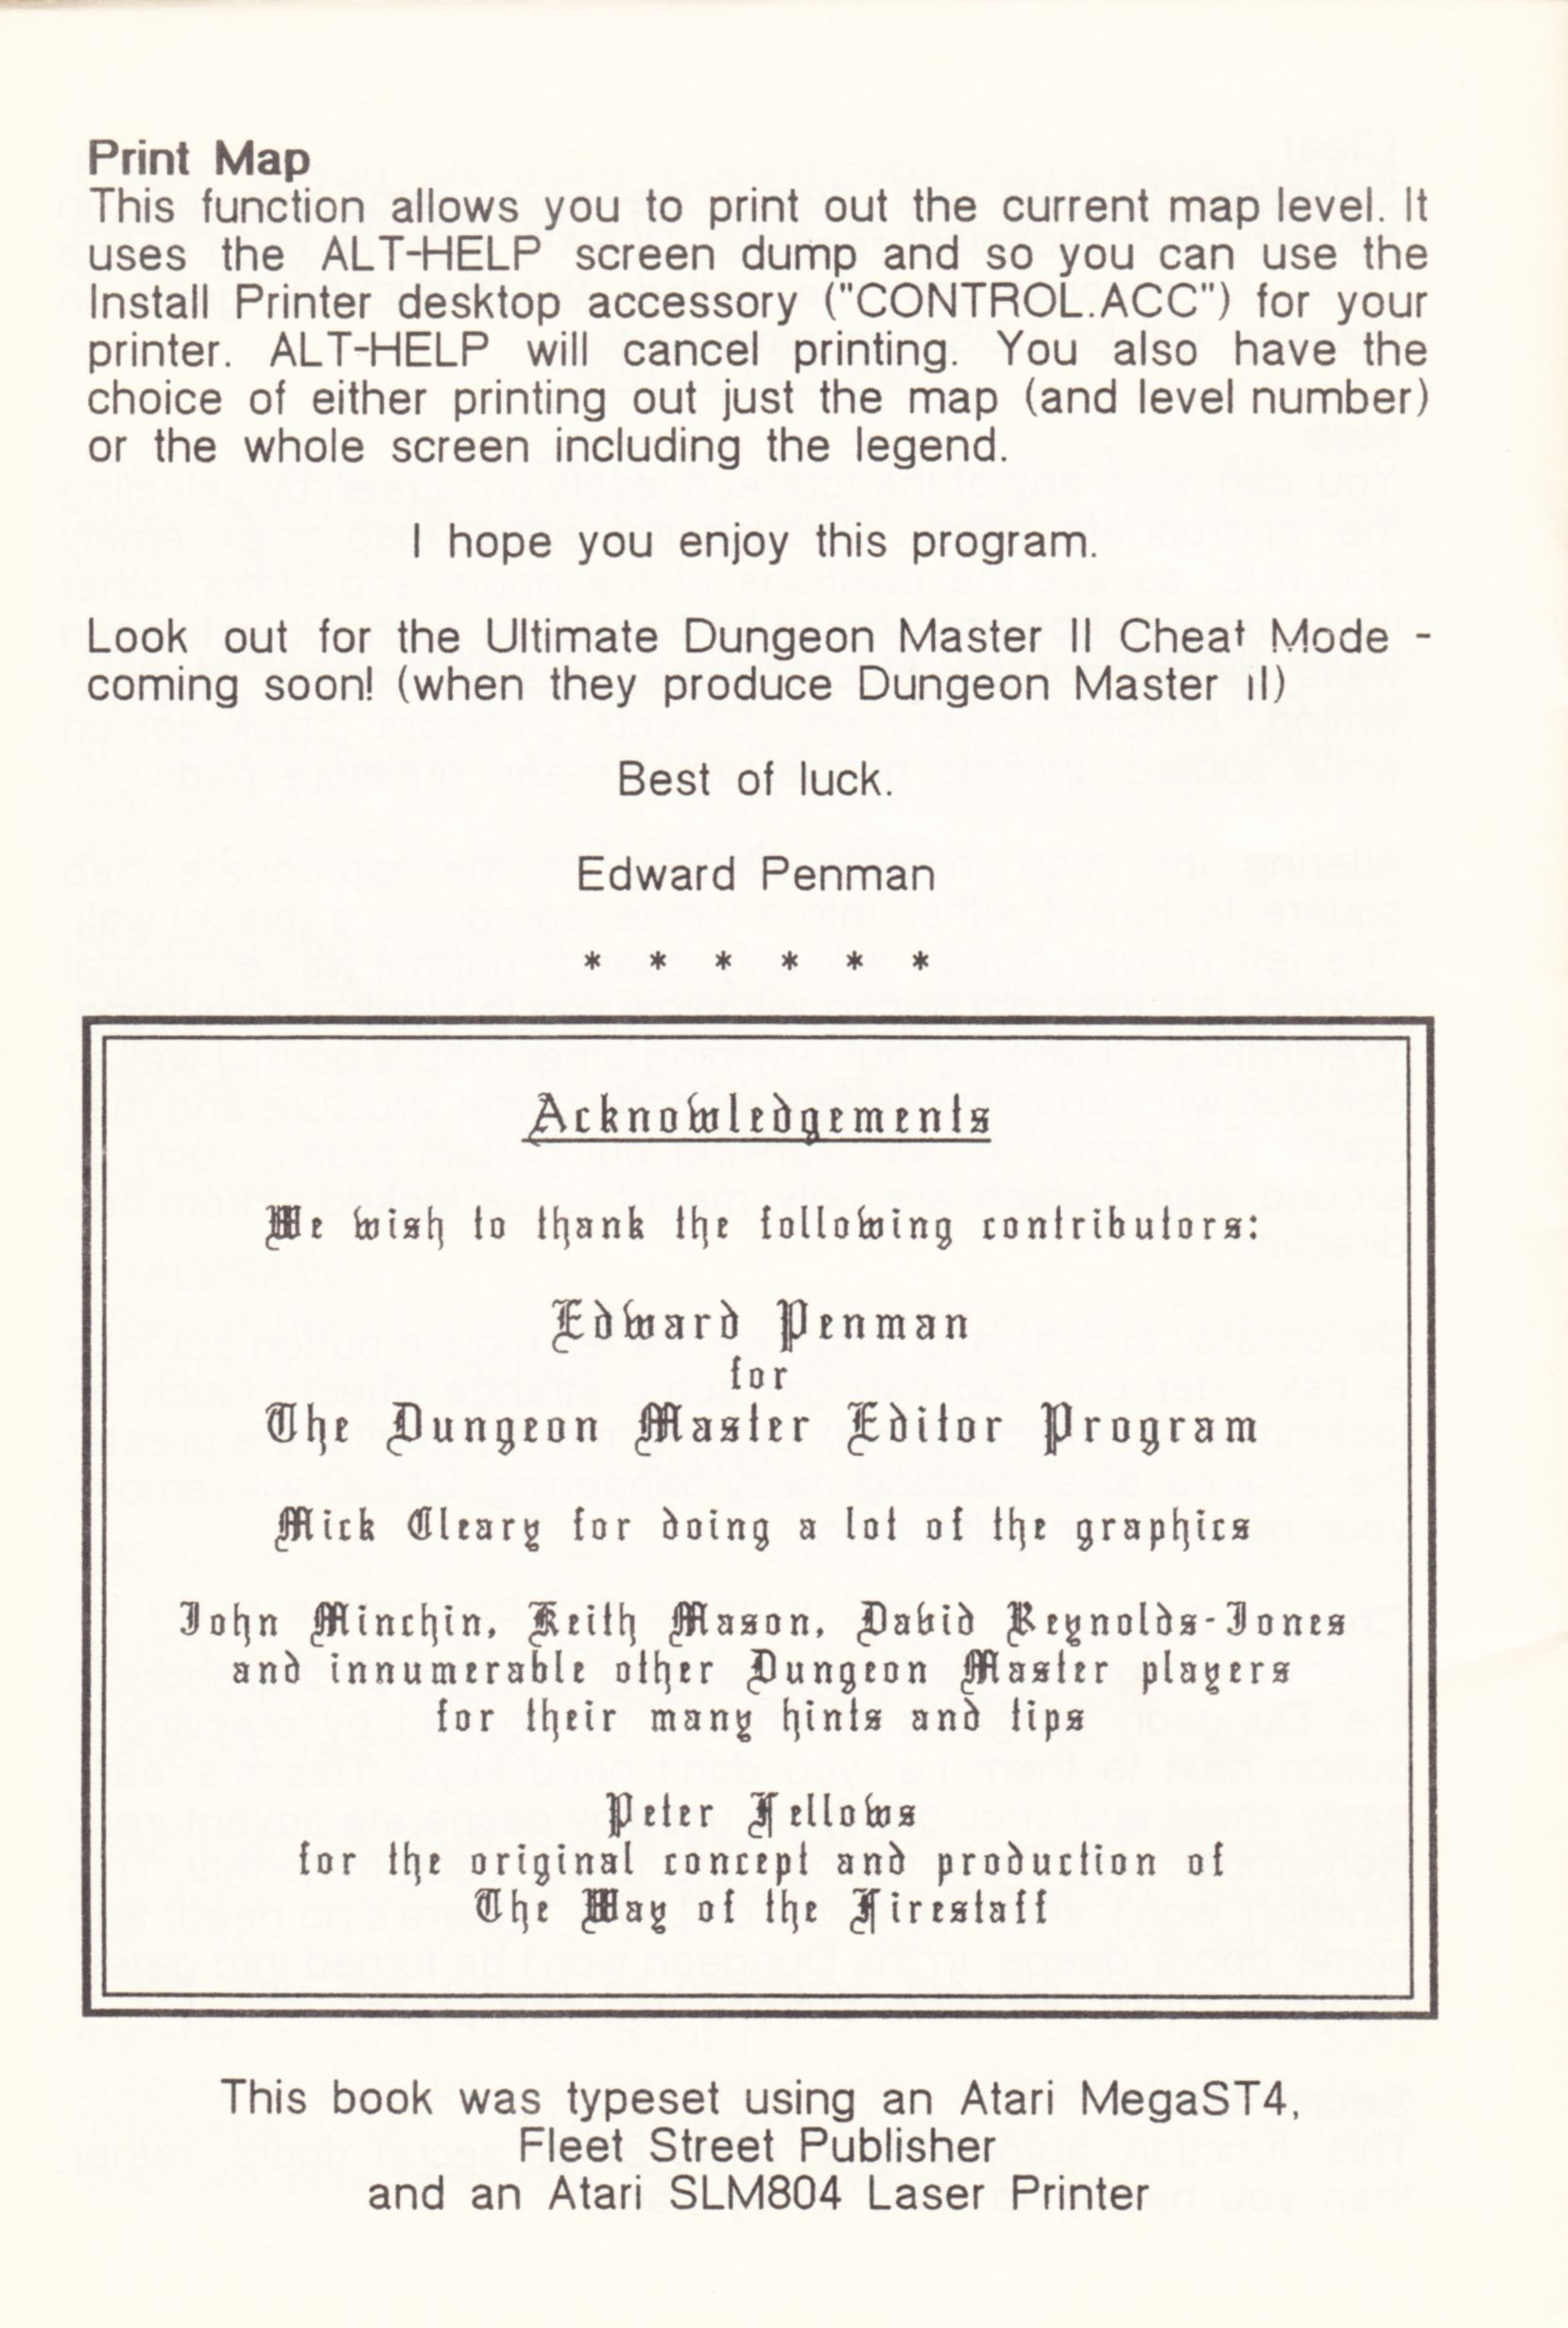 Tool - The Dungeon Master Editor - UK - Amiga - Atari ST Manual - Page 022 - Scan